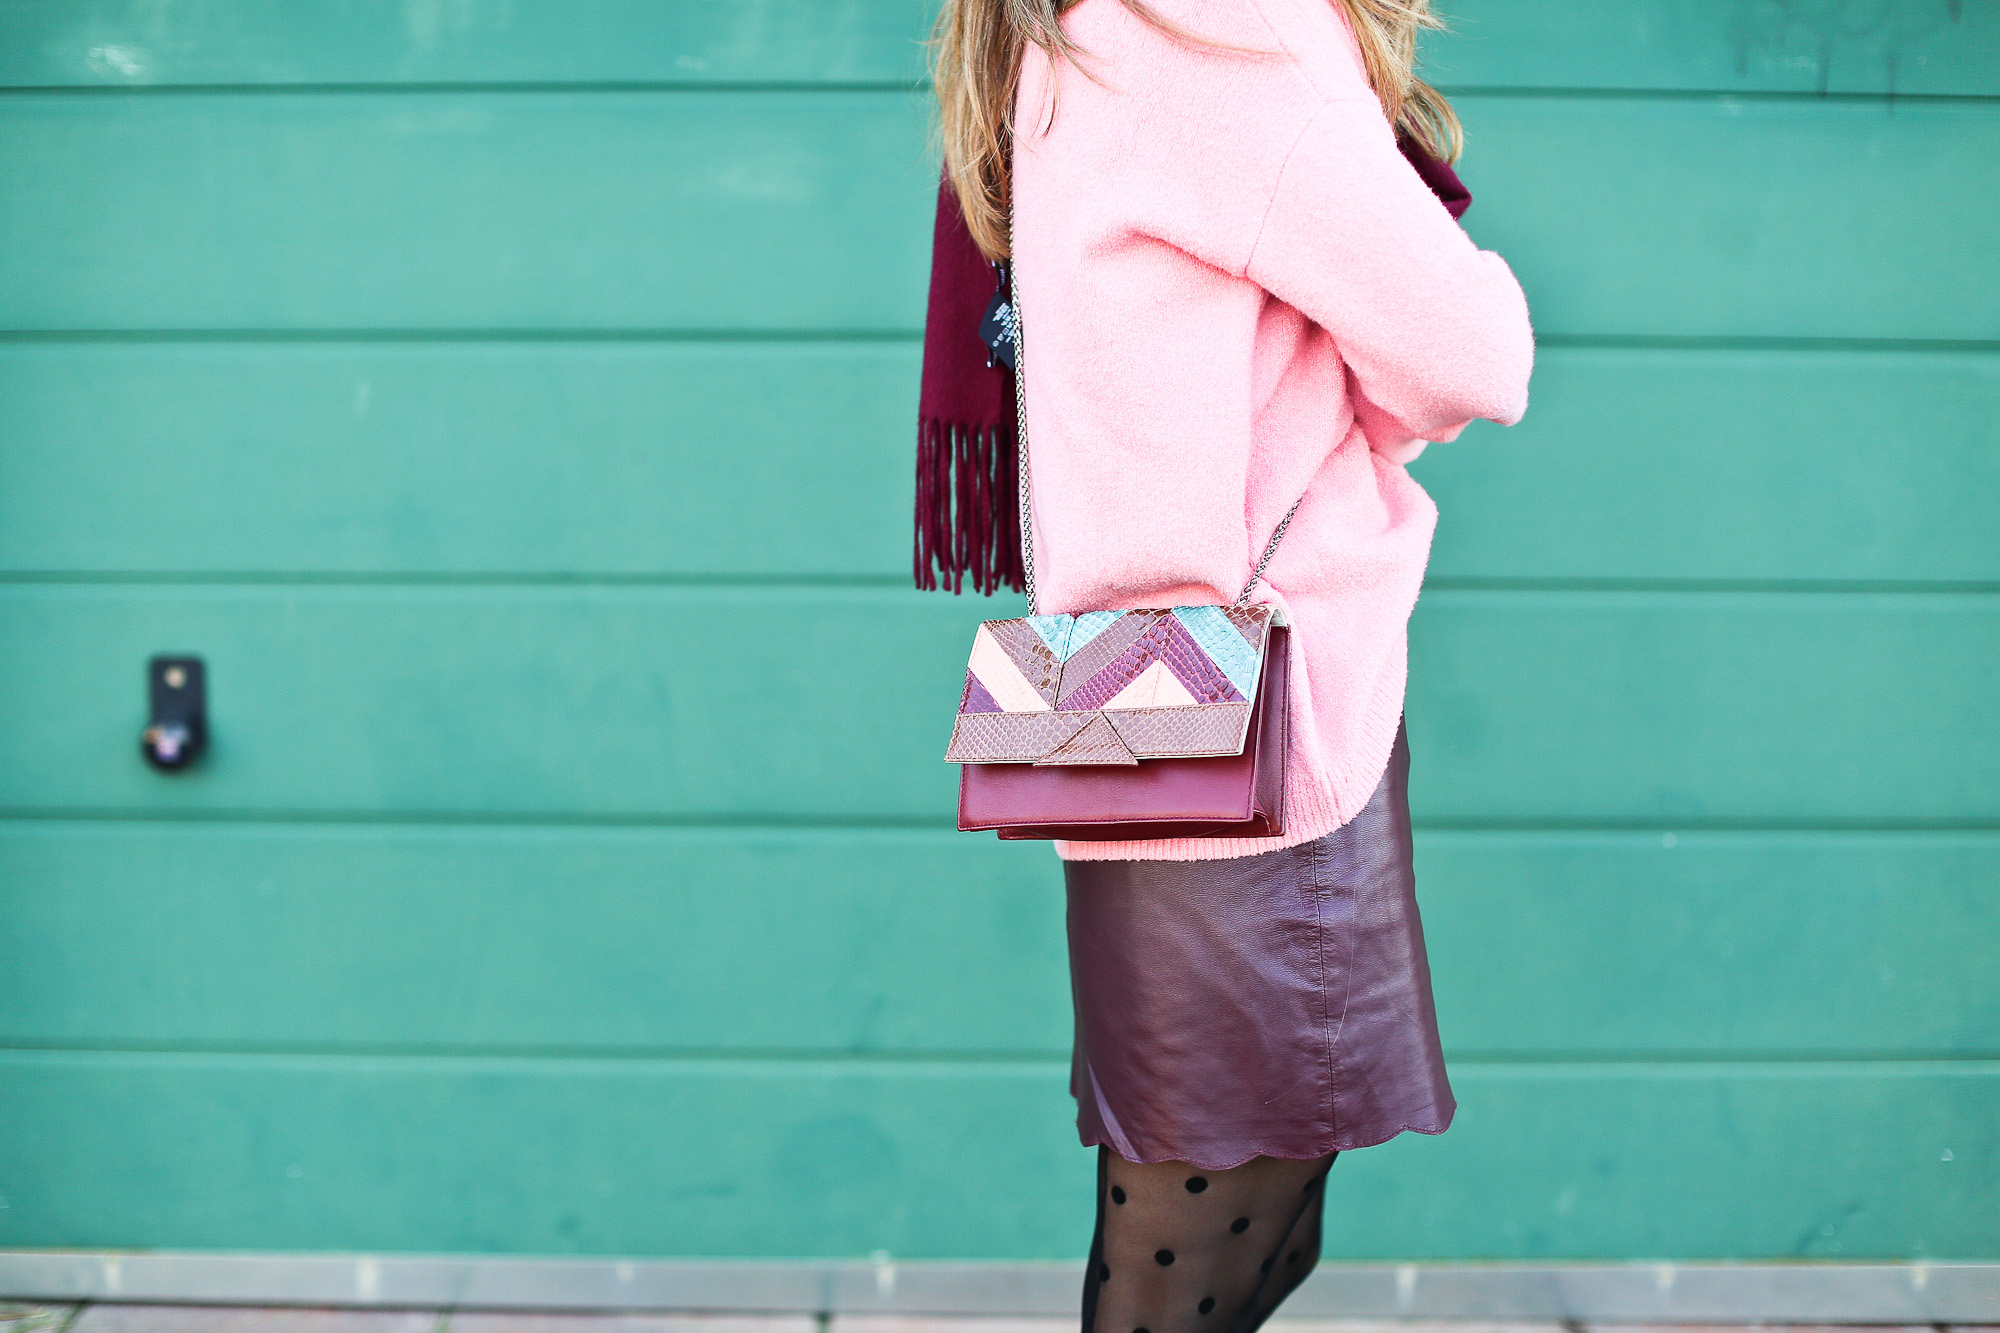 Clochet_streetstyle_fashionblogger_Max&Co_leatherminiskirt_andtherstories_pinksweater_celinesunglasses-11